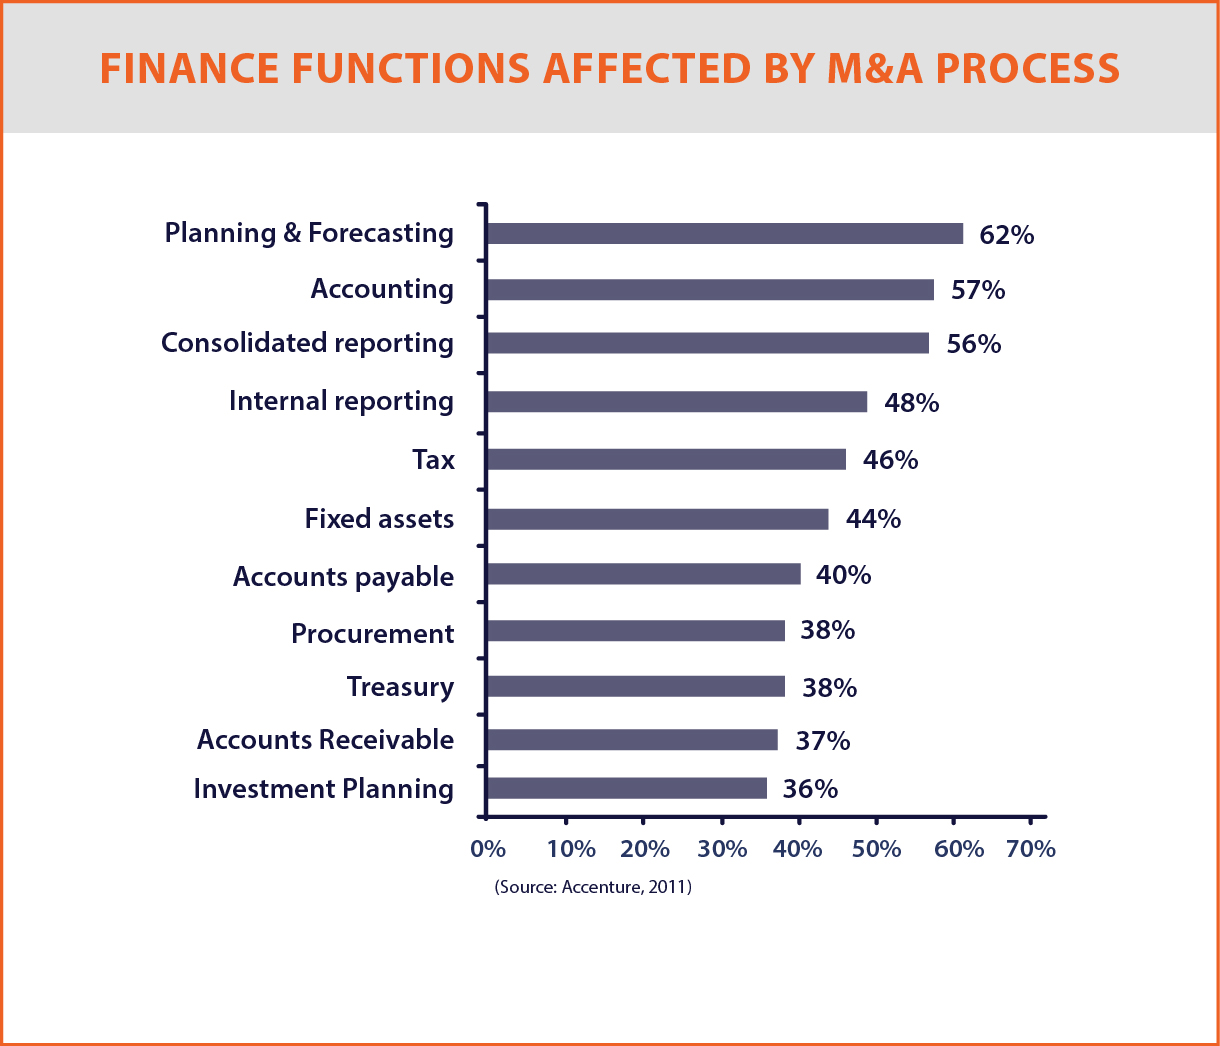 FINANCE-FUNCTIONS-AFFECTED-BY-MA-PROCESS-GRAPHS.jpg